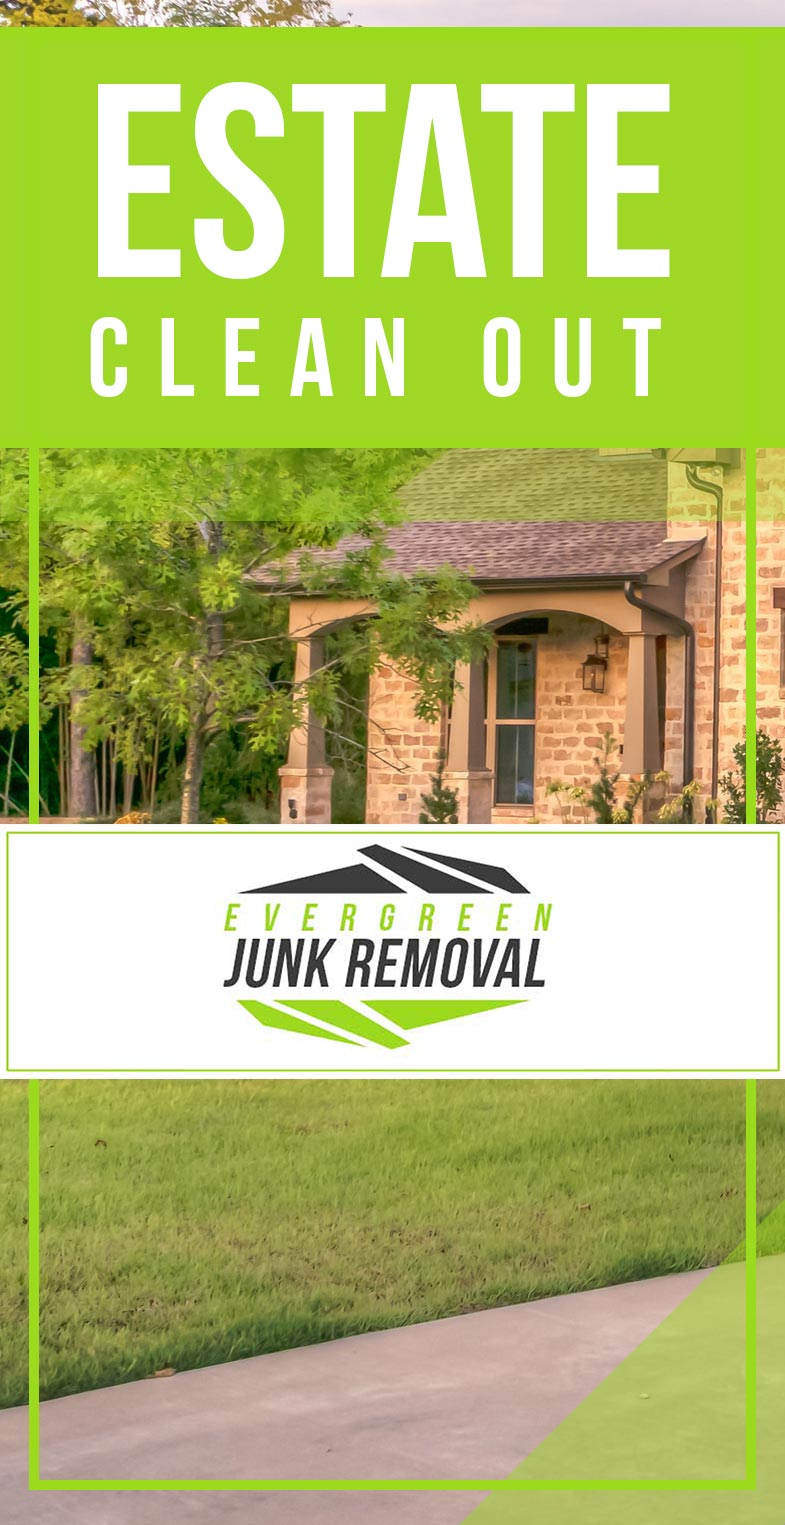 Junk Removal Lauderhill FL Estate Clean Out